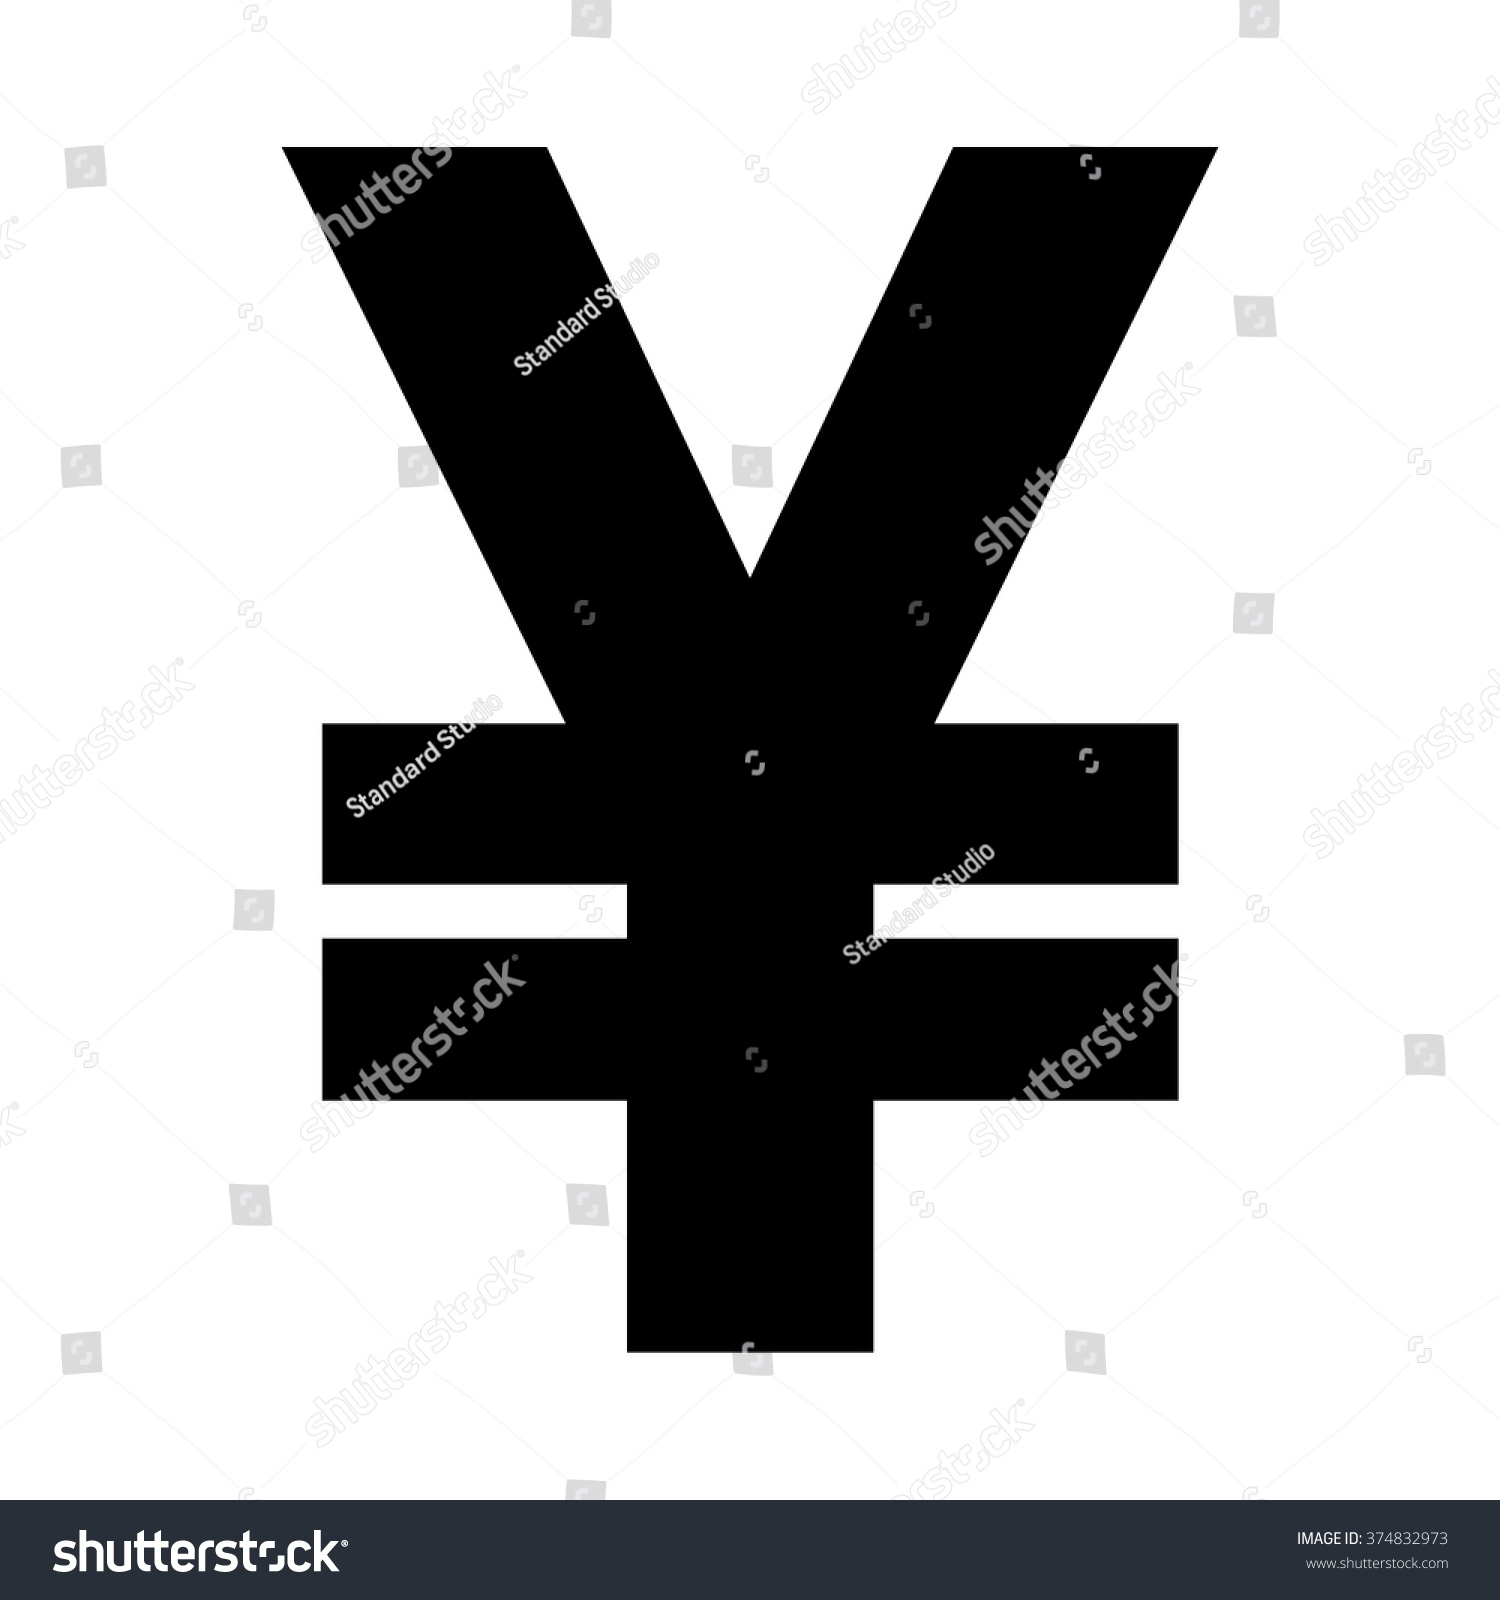 Currency symbol for yen images symbol and sign ideas yen sign icon jpy currency symbol stock vector 374832973 yen sign icon jpy currency symbol money biocorpaavc